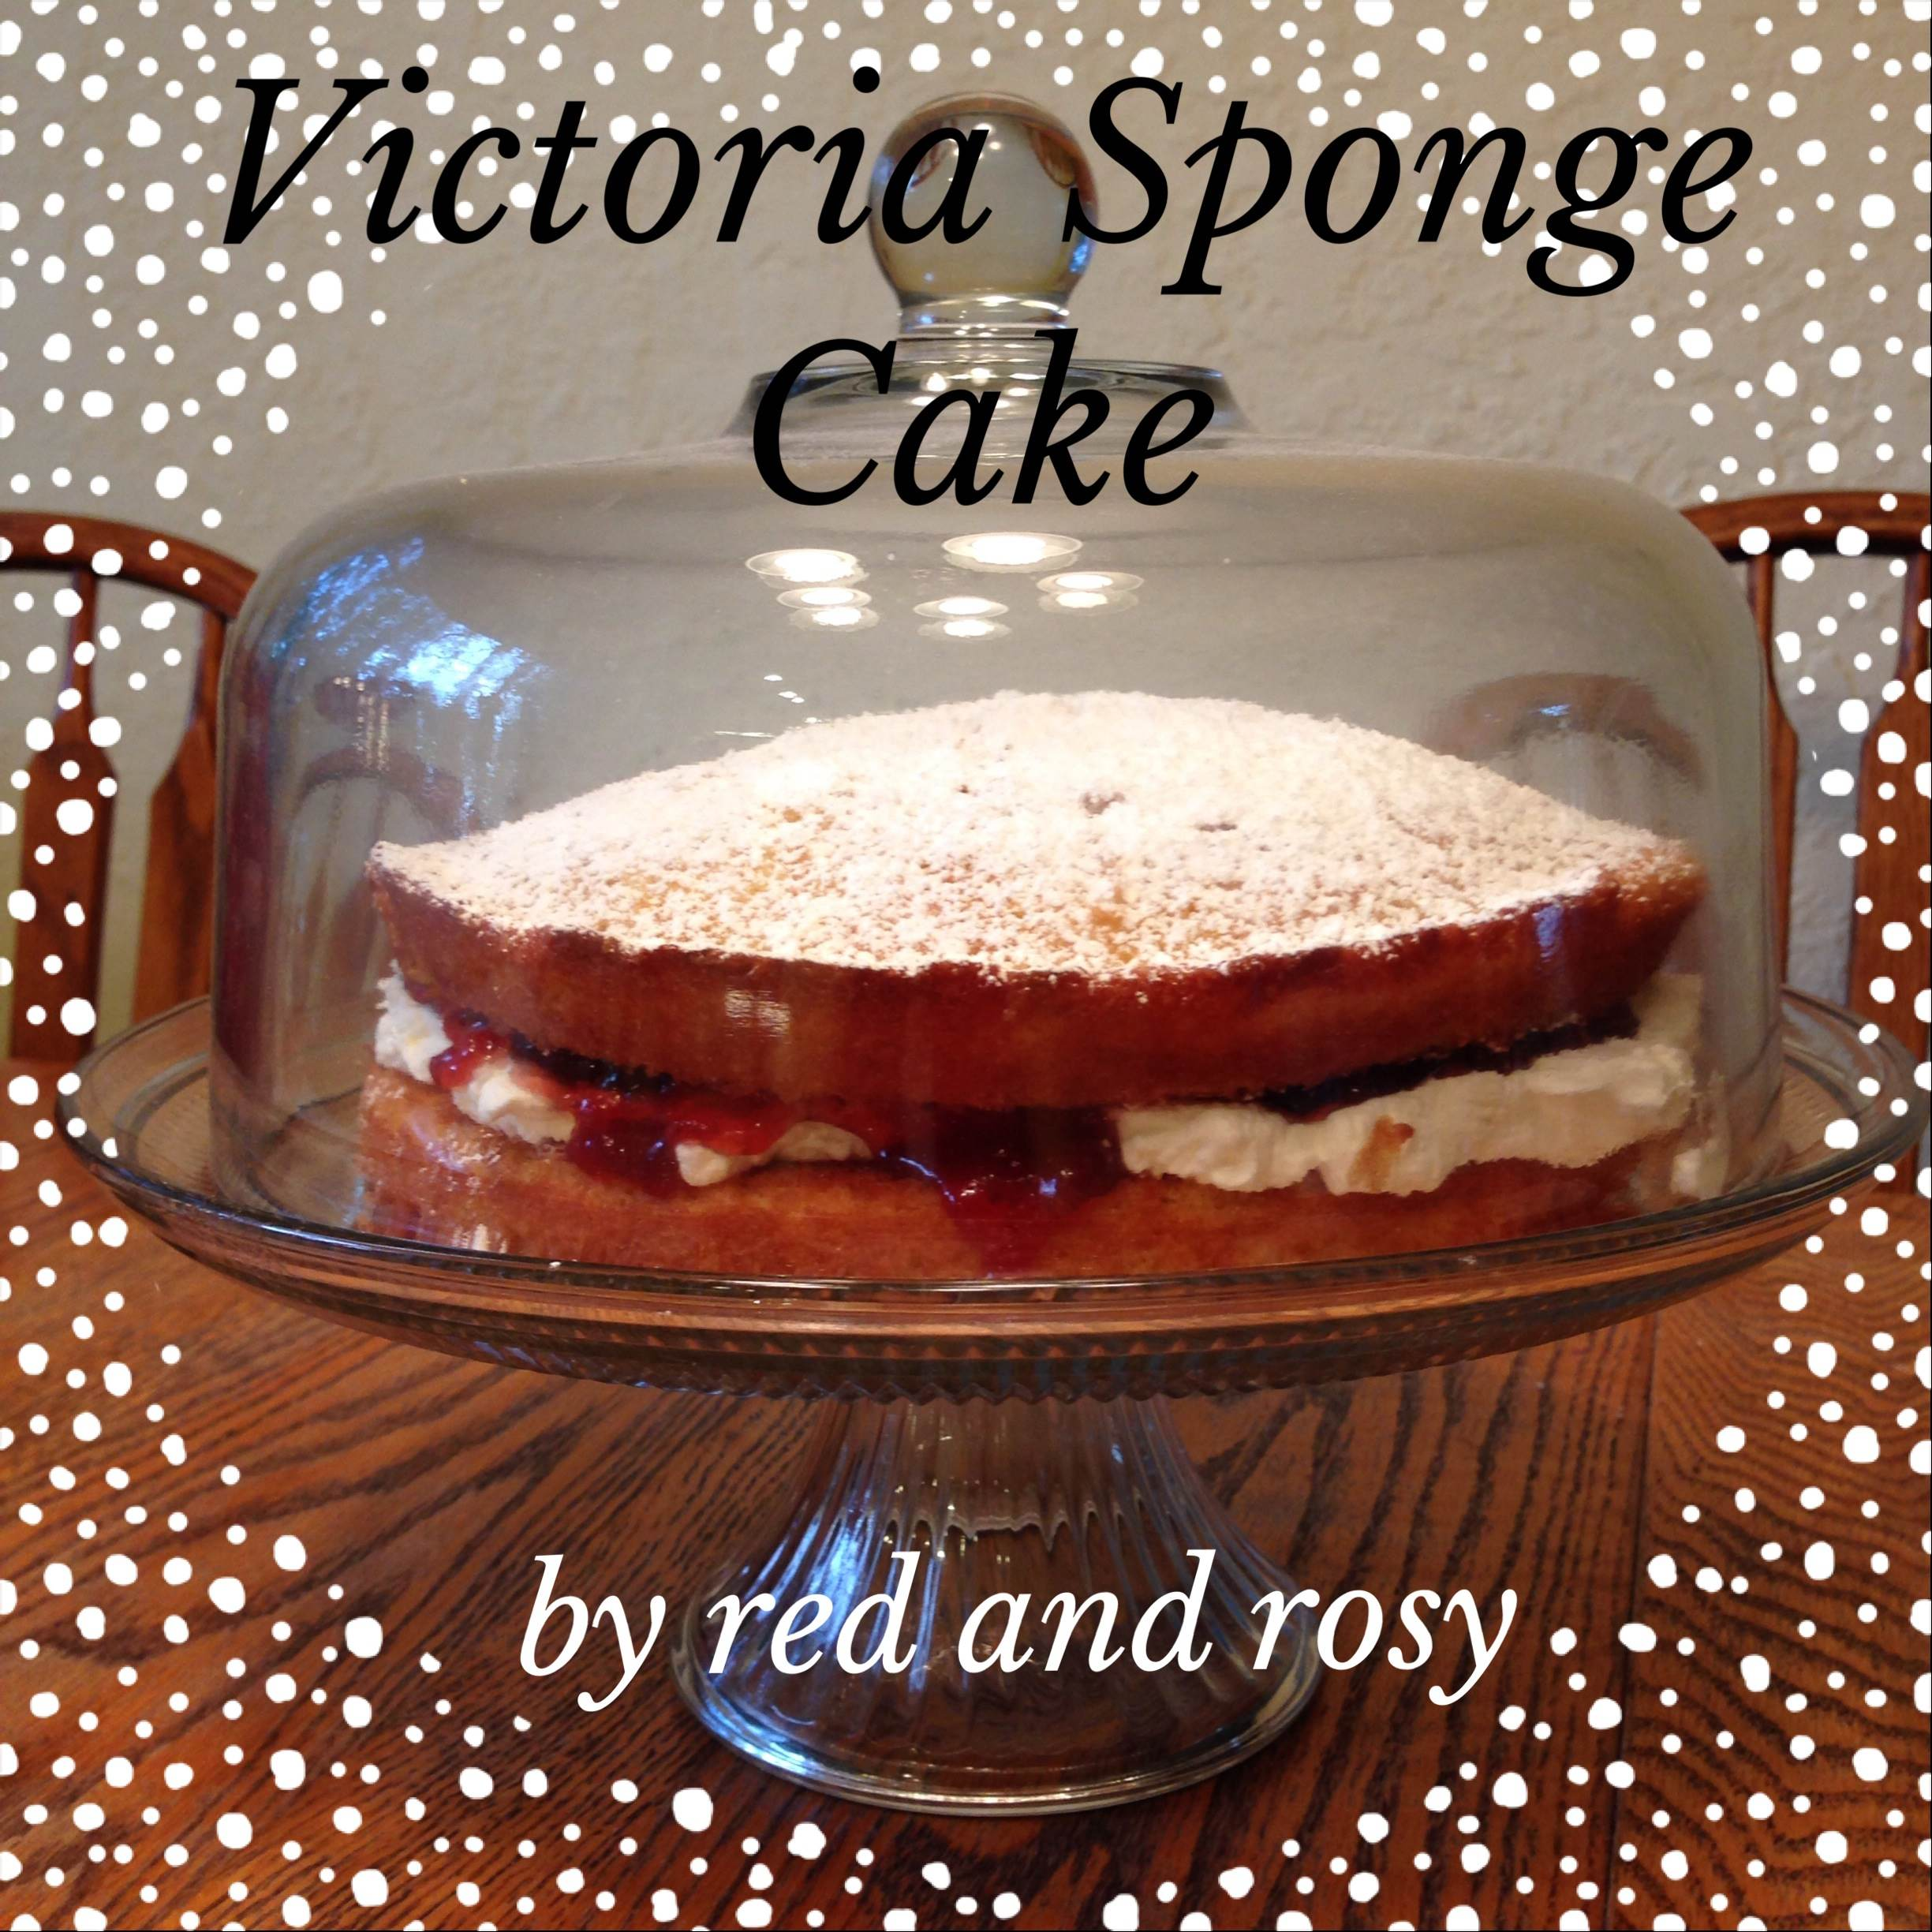 Victoria Sponge Cake by Red and Rosy